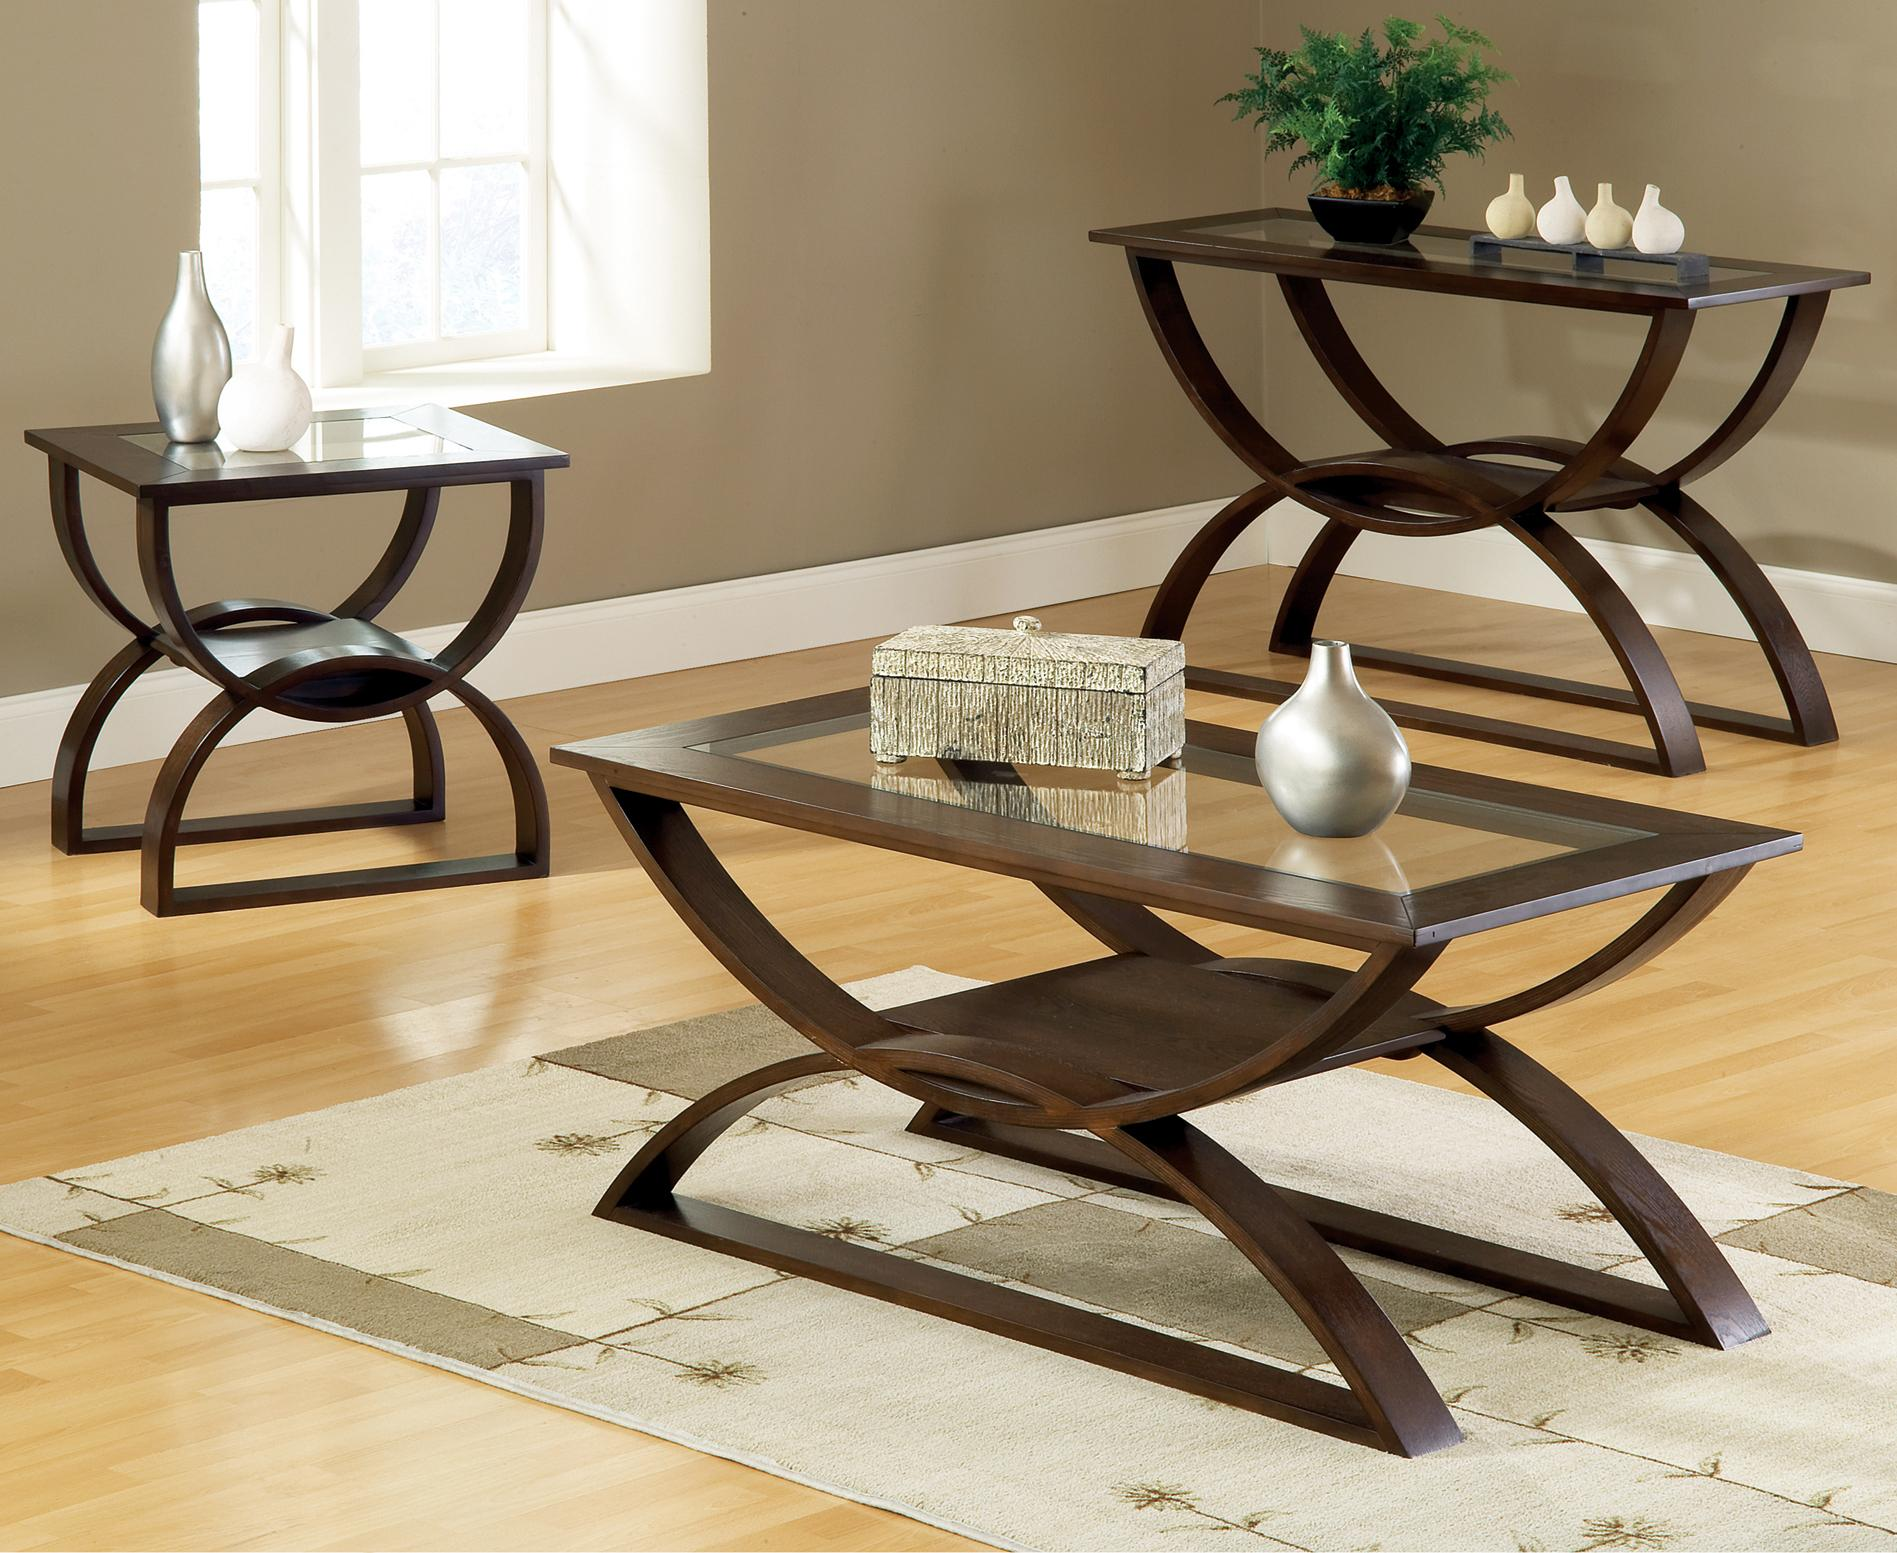 Steve Silver Dylan Square End Table with Curved Base | Walker\u0027s Furniture | End Table Spokane Kennewick Tri-Cities Wenatchee Coeur D\u0027Alene Yakima ... & Steve Silver Dylan Square End Table with Curved Base | Walker\u0027s ...